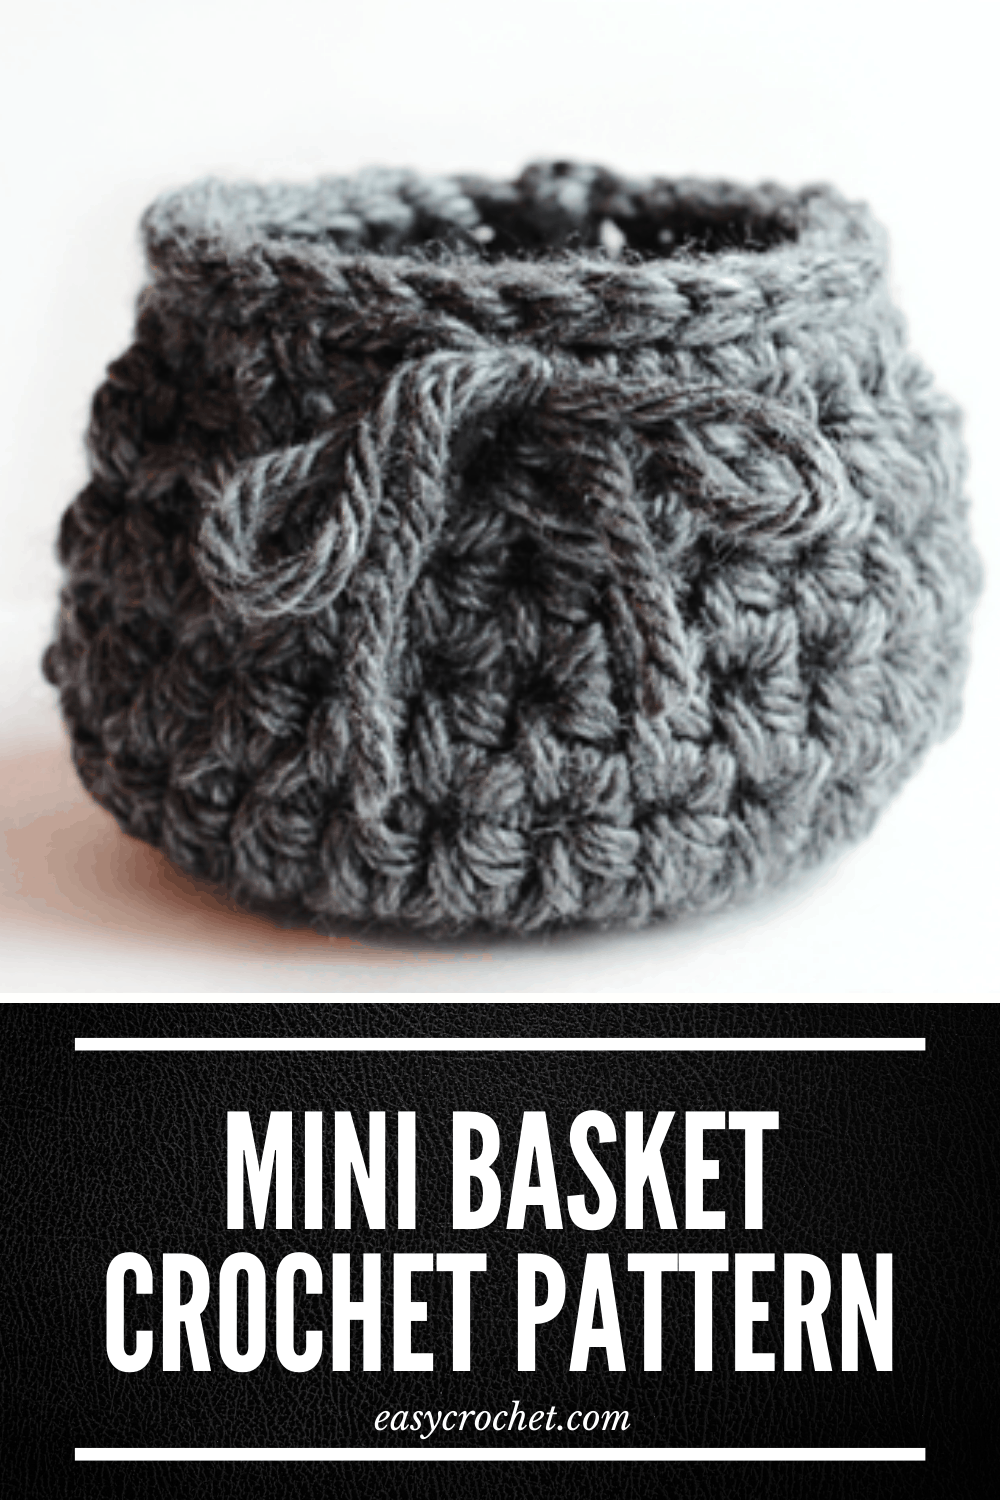 Simple Crochet Basket Pattern via @easycrochetcom